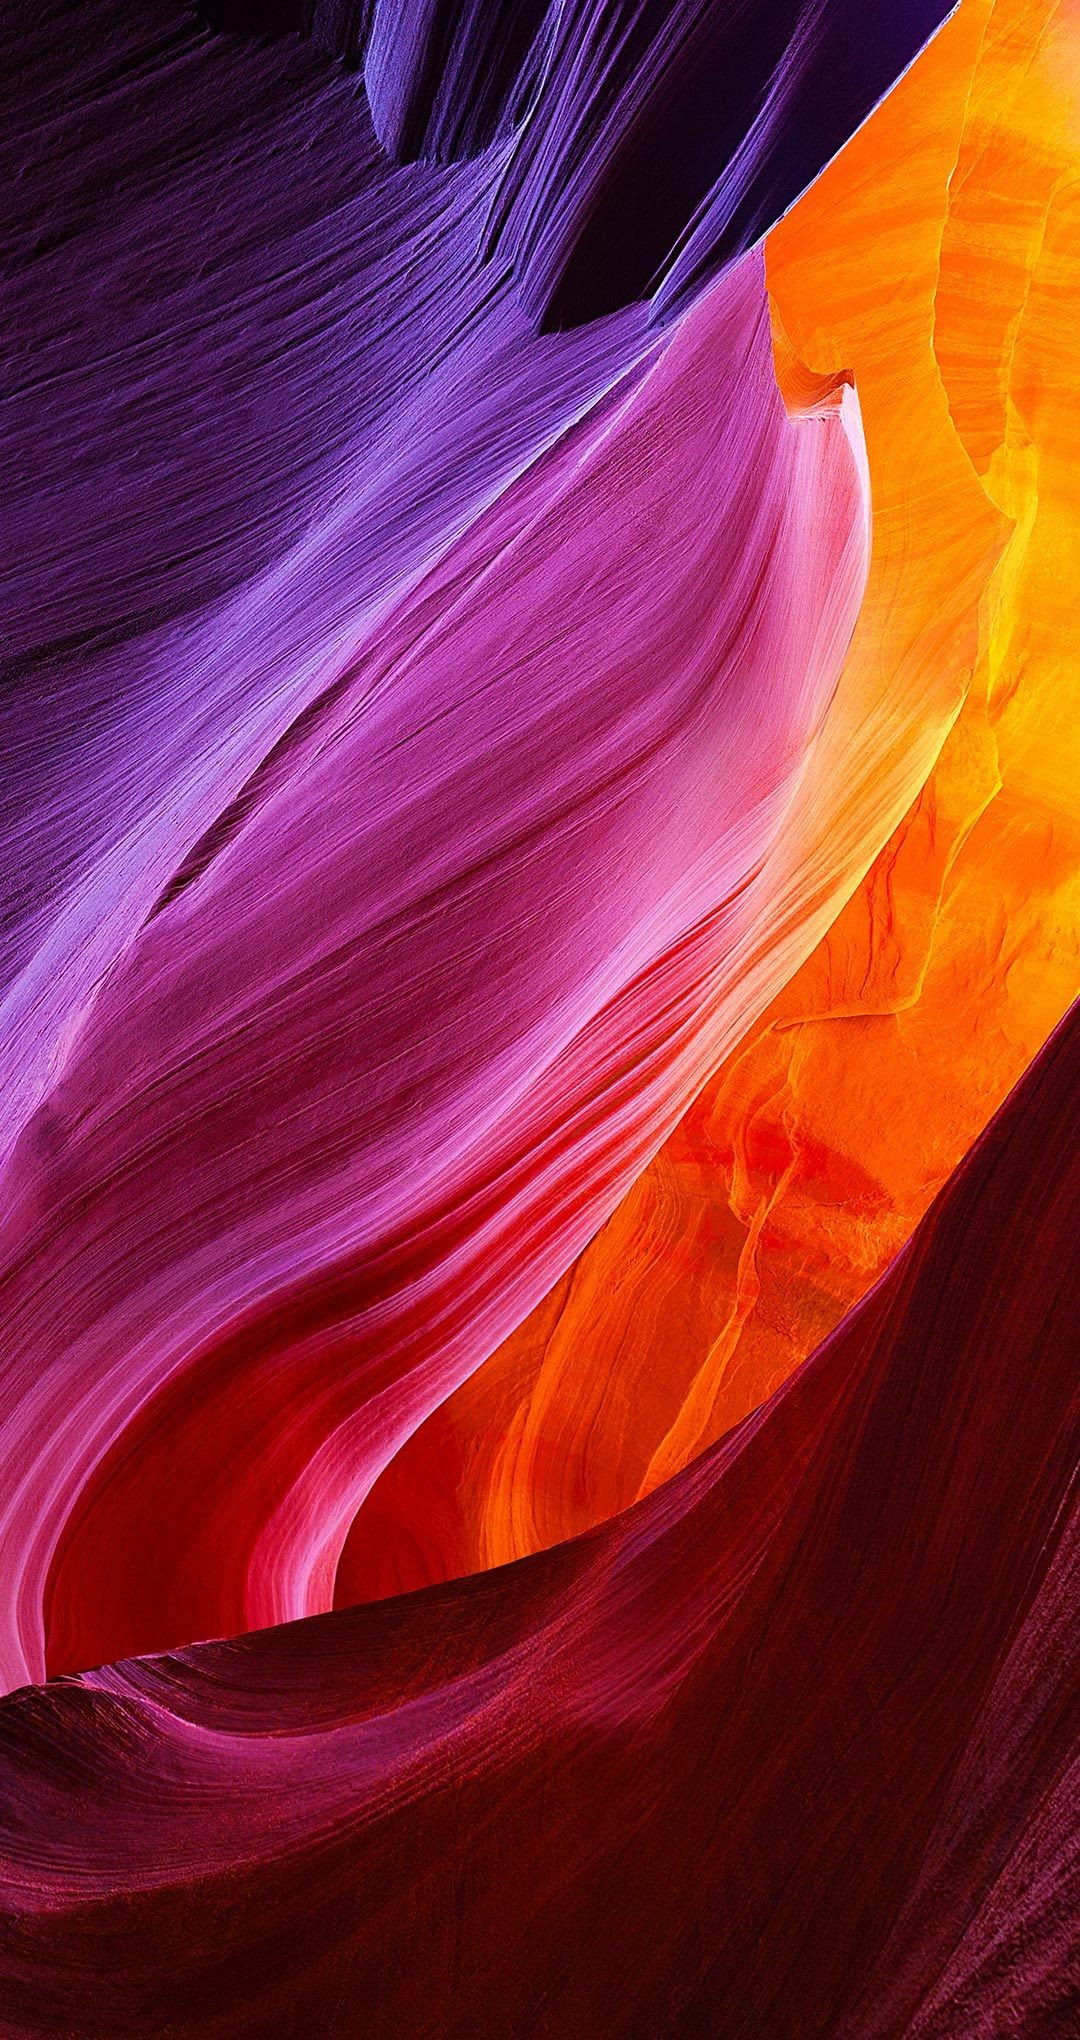 Note 5 Hd Wallpaper 73 Images